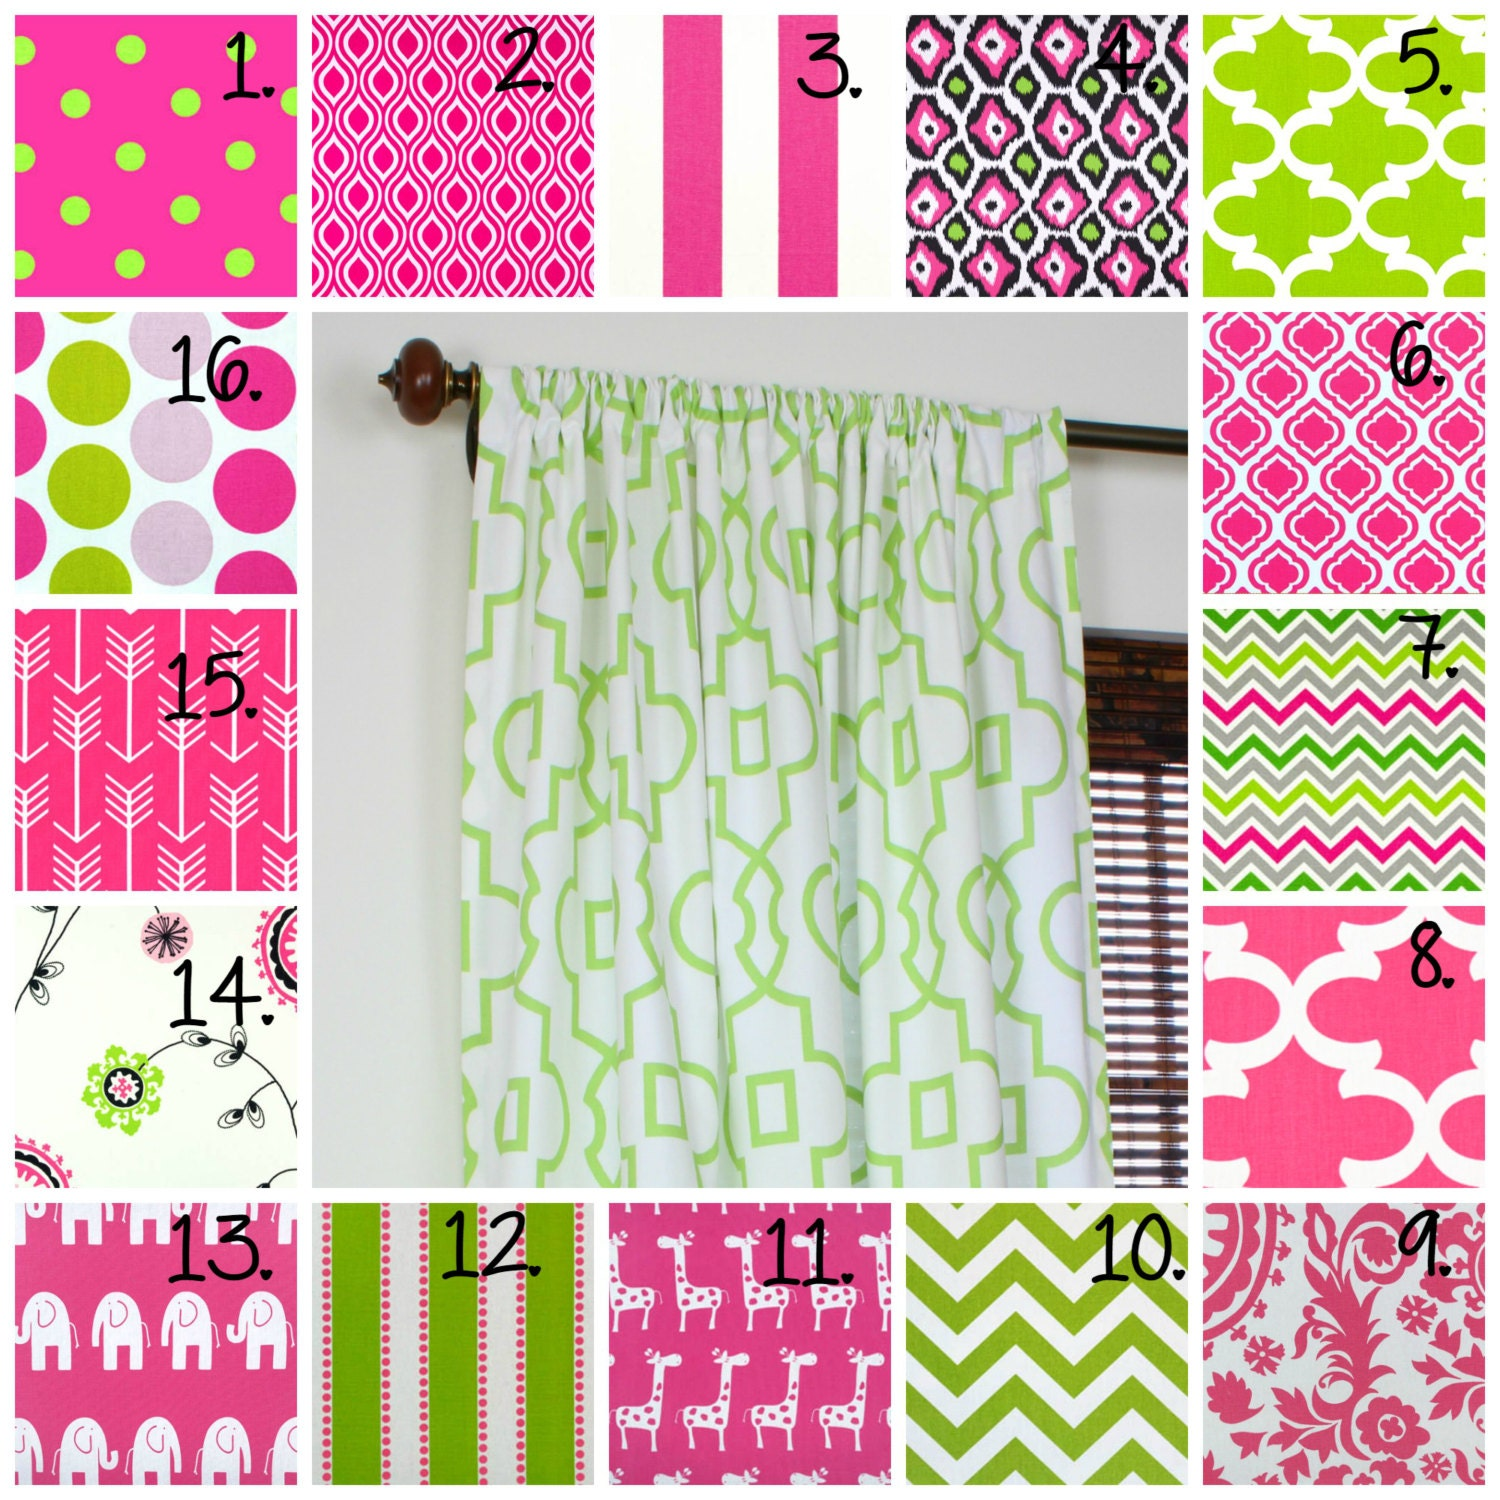 Pink and white polka dot curtains - Pink Curtain Panel Set Nursery Curtains Girl Bedroom Curtains Little Girl Curtains Pink And Green Drapes Chevron Curtains Polka Dot Curtains